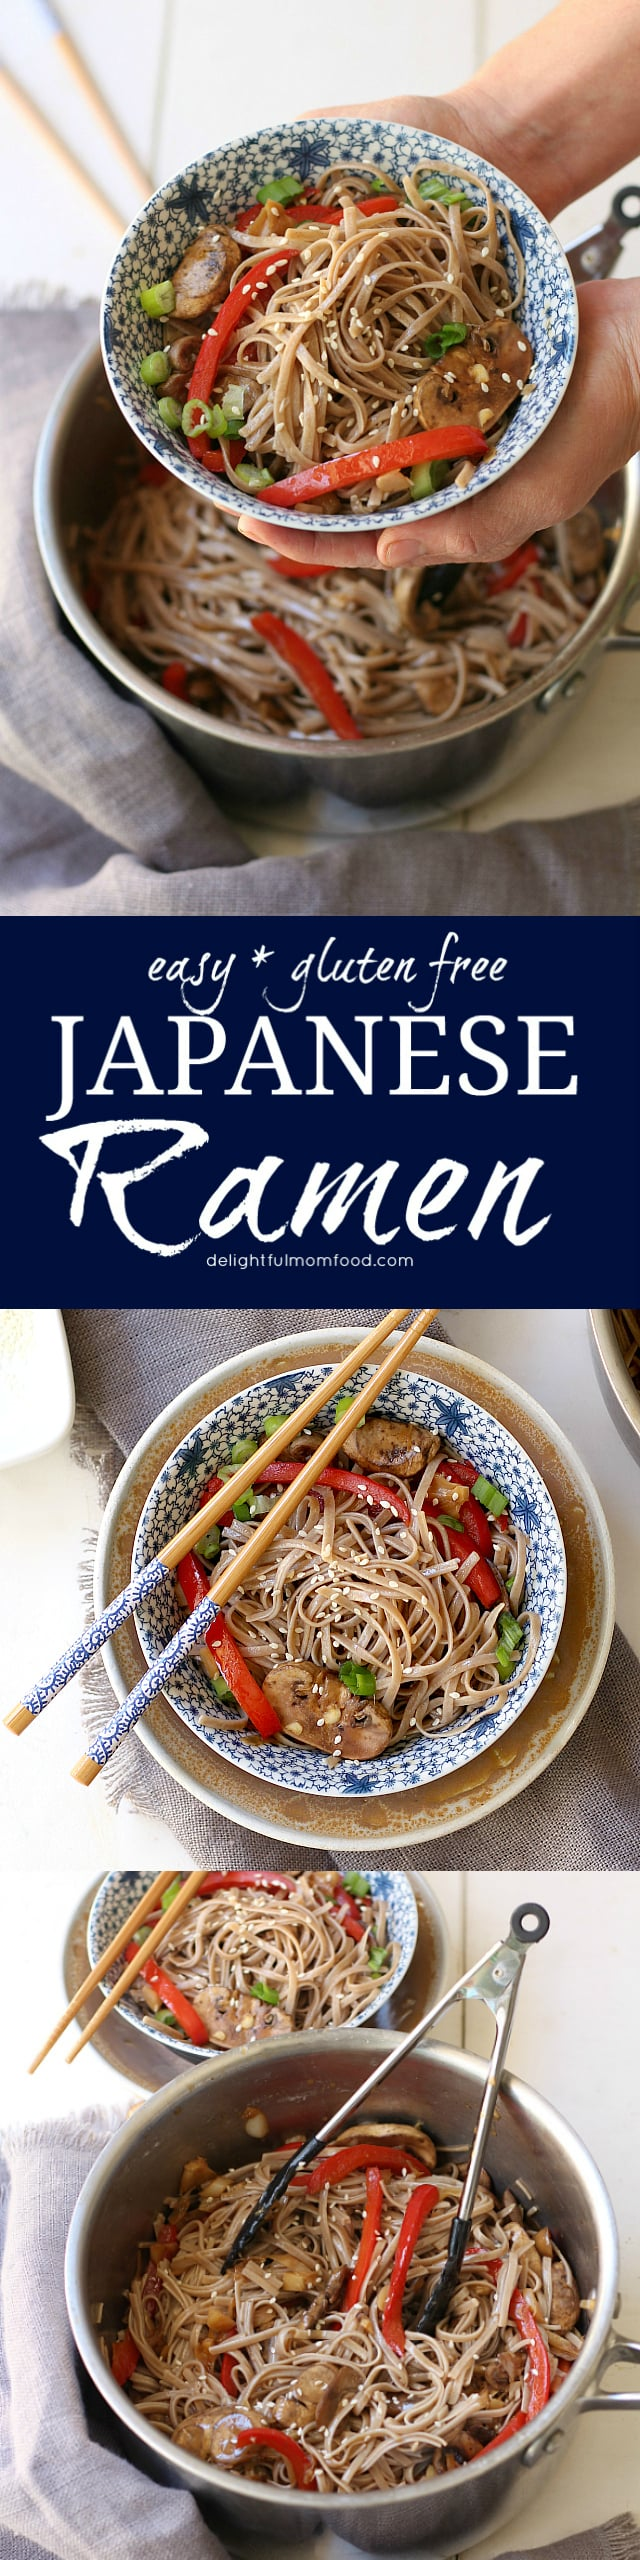 Healthy Gluten Free Japanese Ramen Noodles Recipe